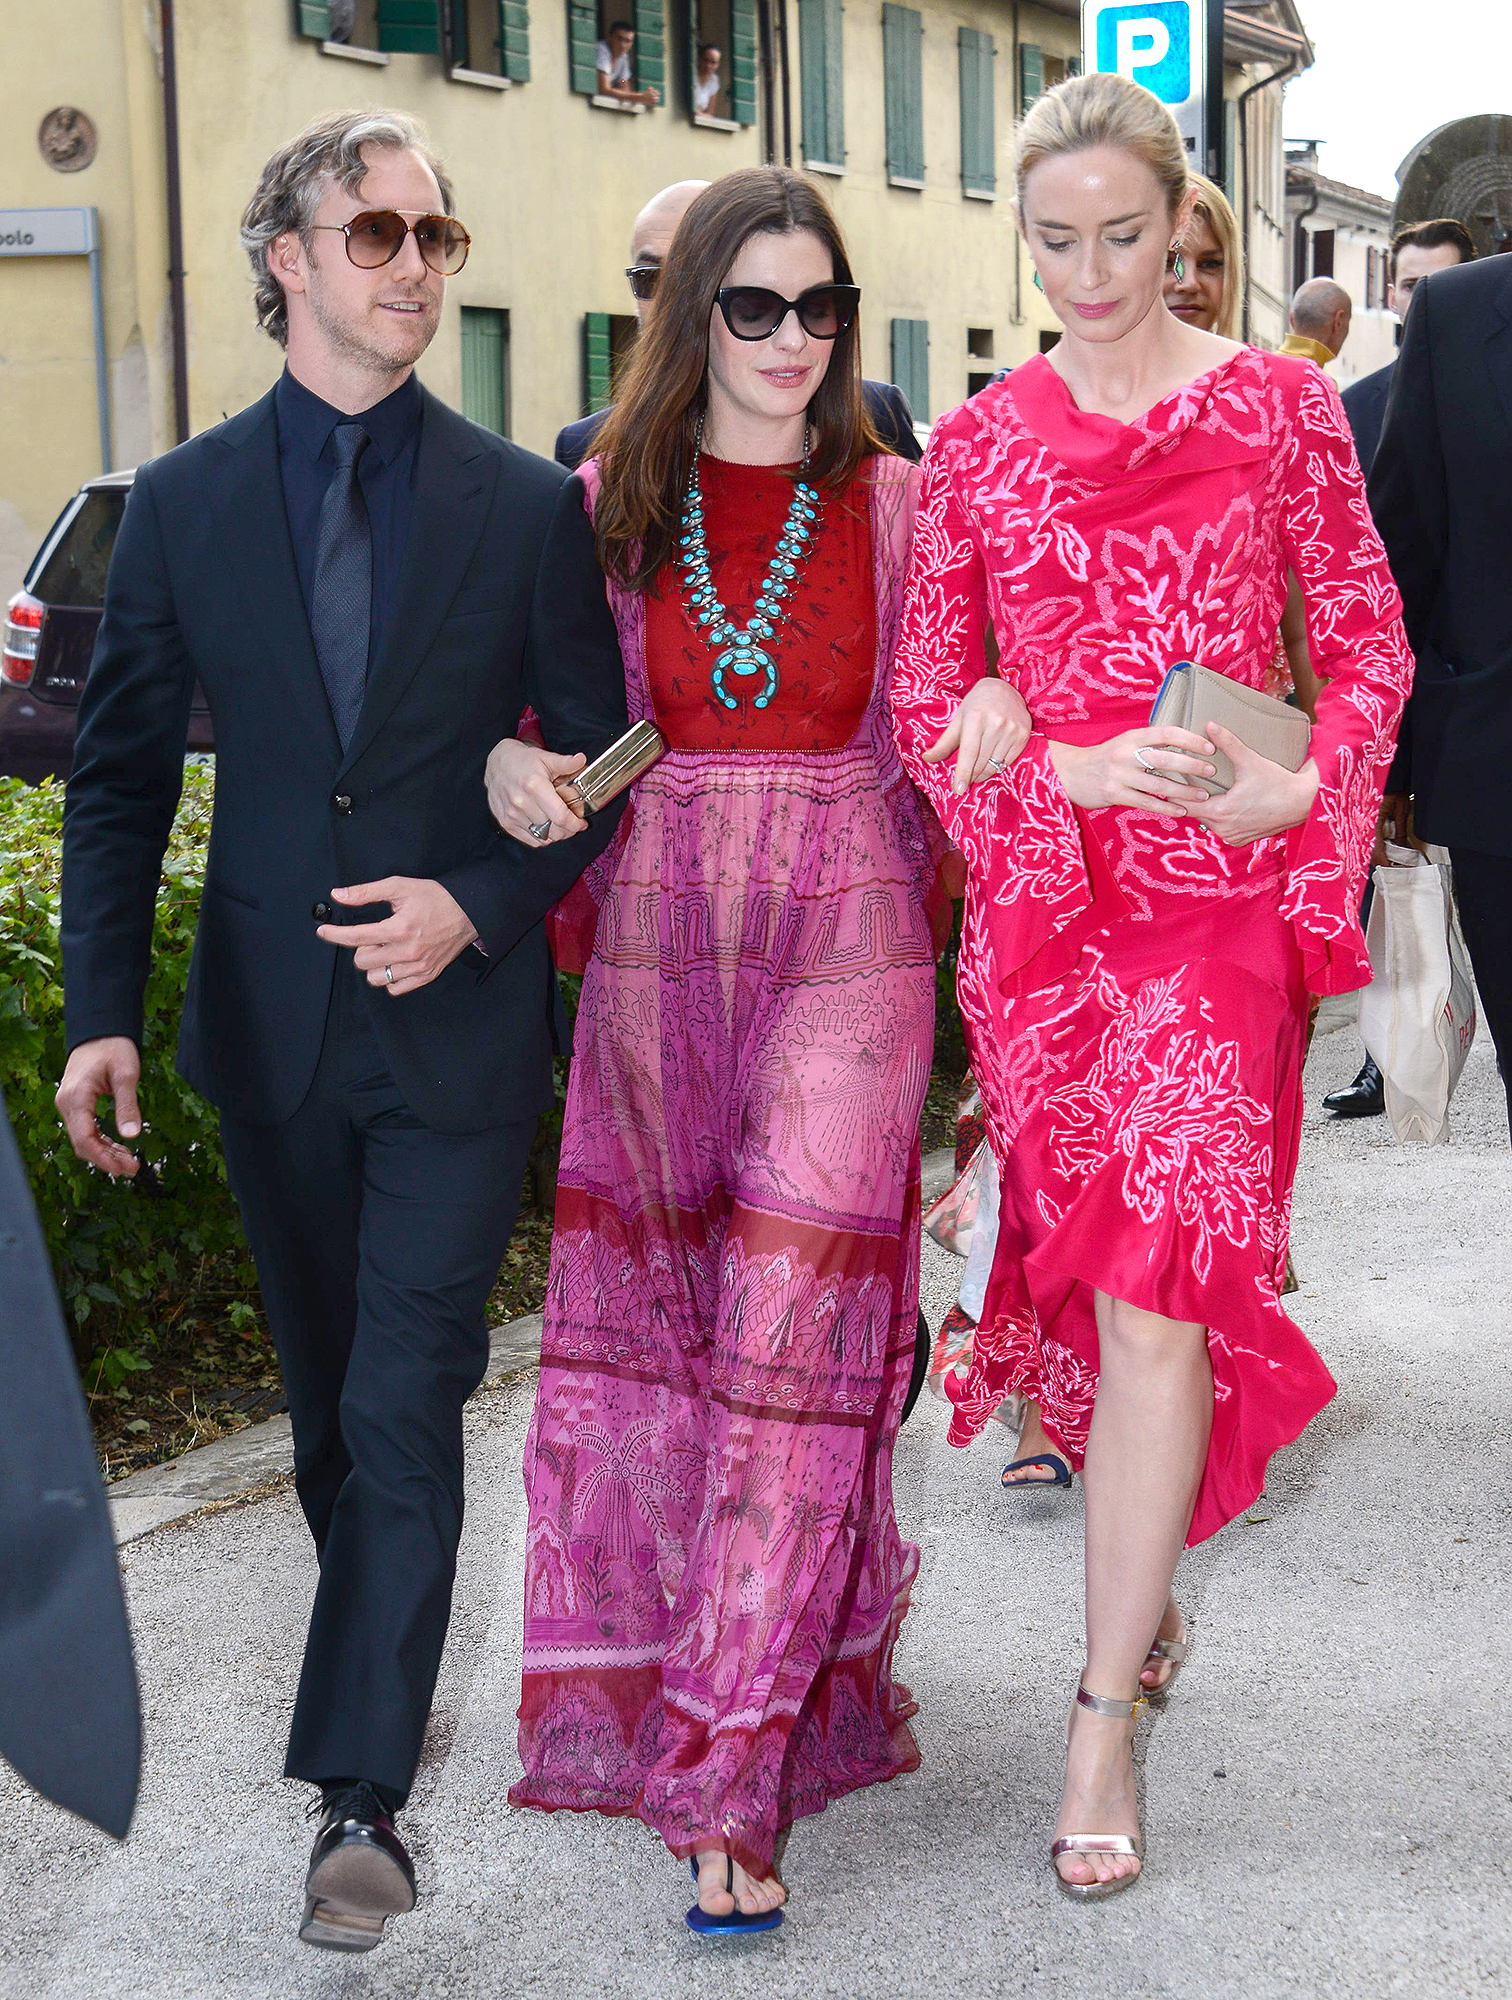 Arrivals for the Jessica Chastain and Gian Luca Passi Wedding, Villa Tiepolo Passi, Italy - 10 Jun 2017